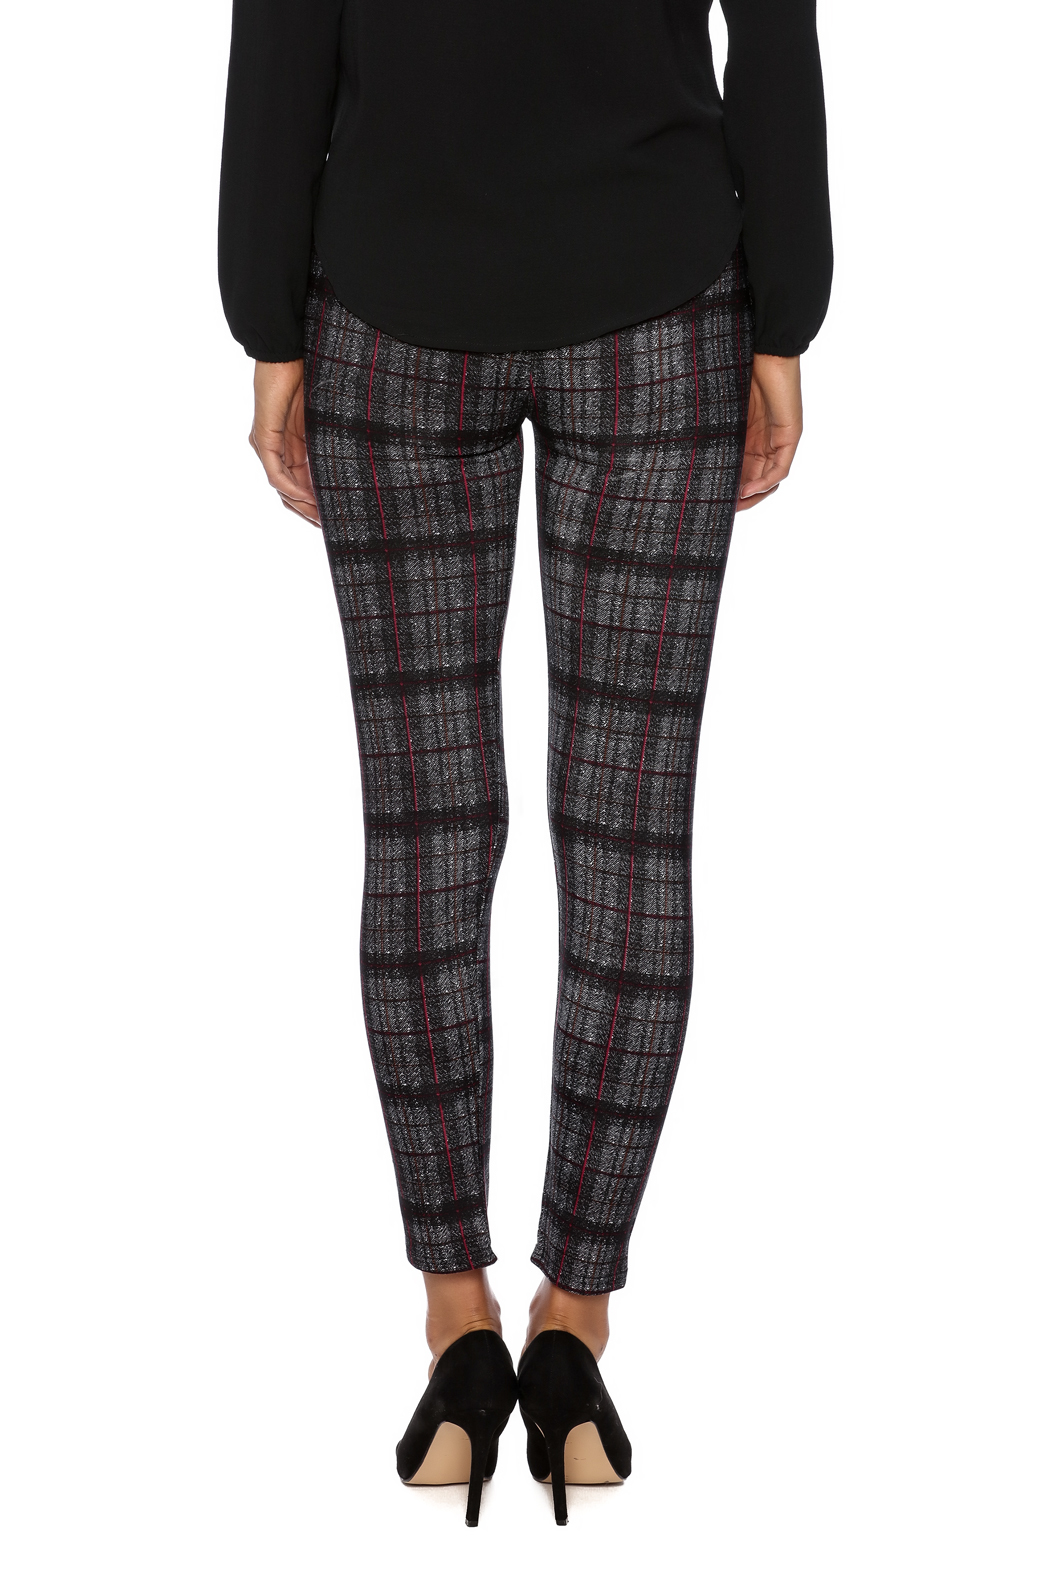 Coco + Carmen Plaid Leggings from Wisconsin by Ava's a ...